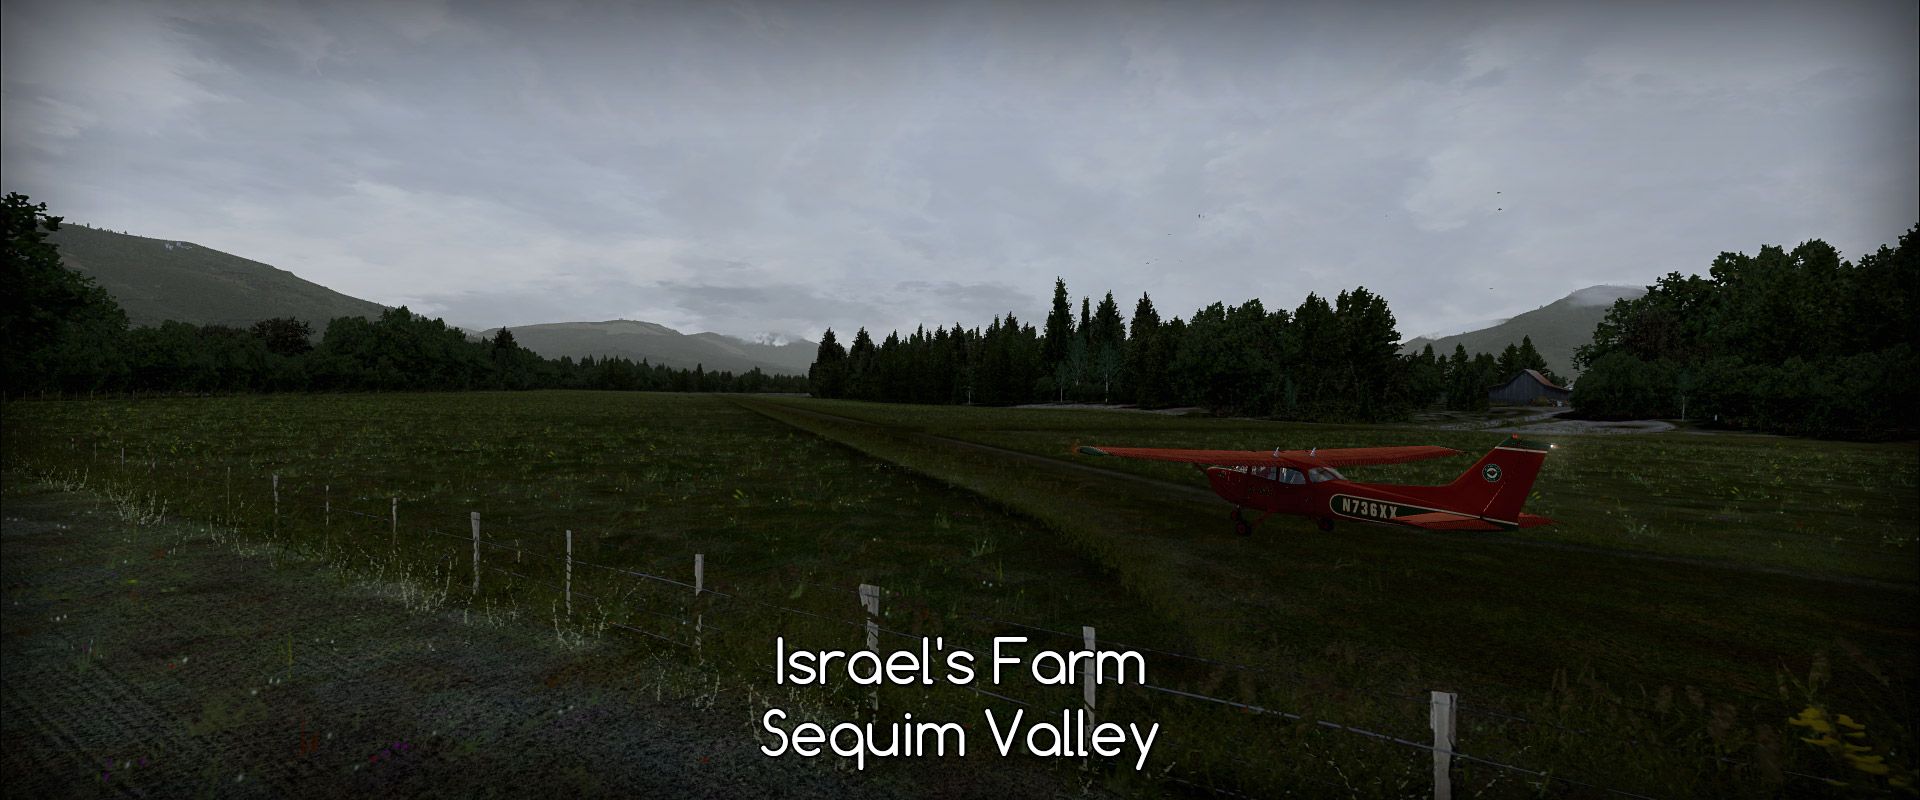 Israel's Farm to Sequim Valley (WA56-W28)